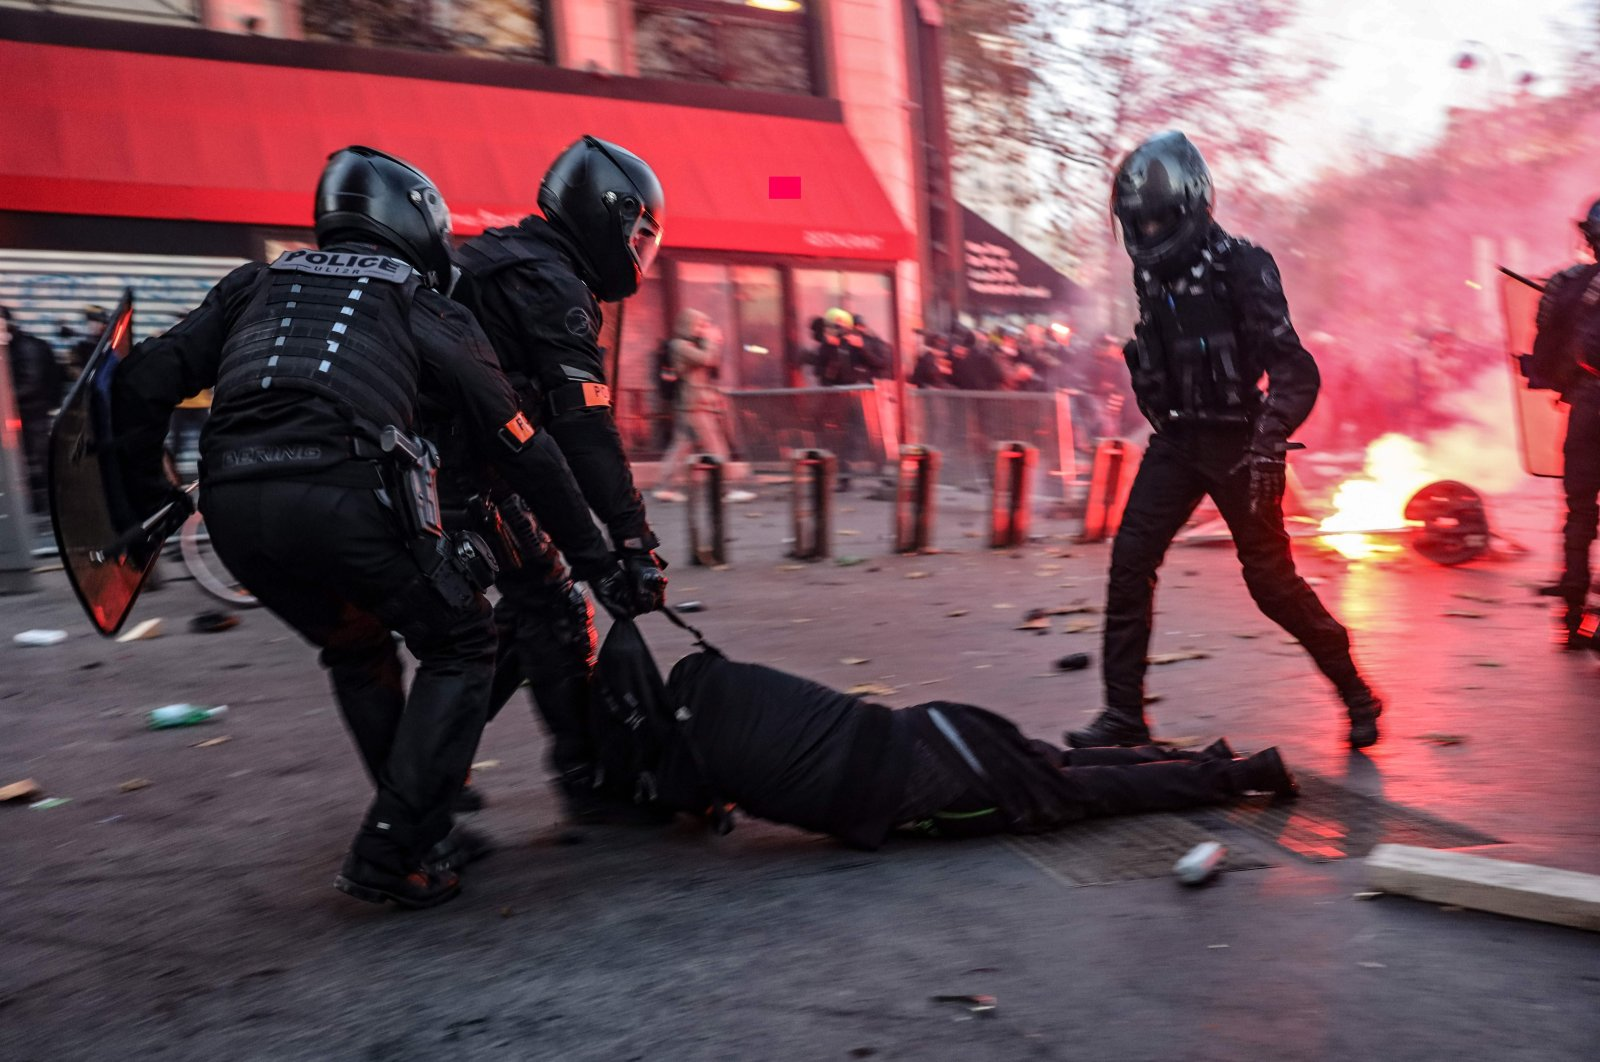 Police officers drag a man on the ground during protests, Paris, Nov. 28, 2020. (AFP Photo)